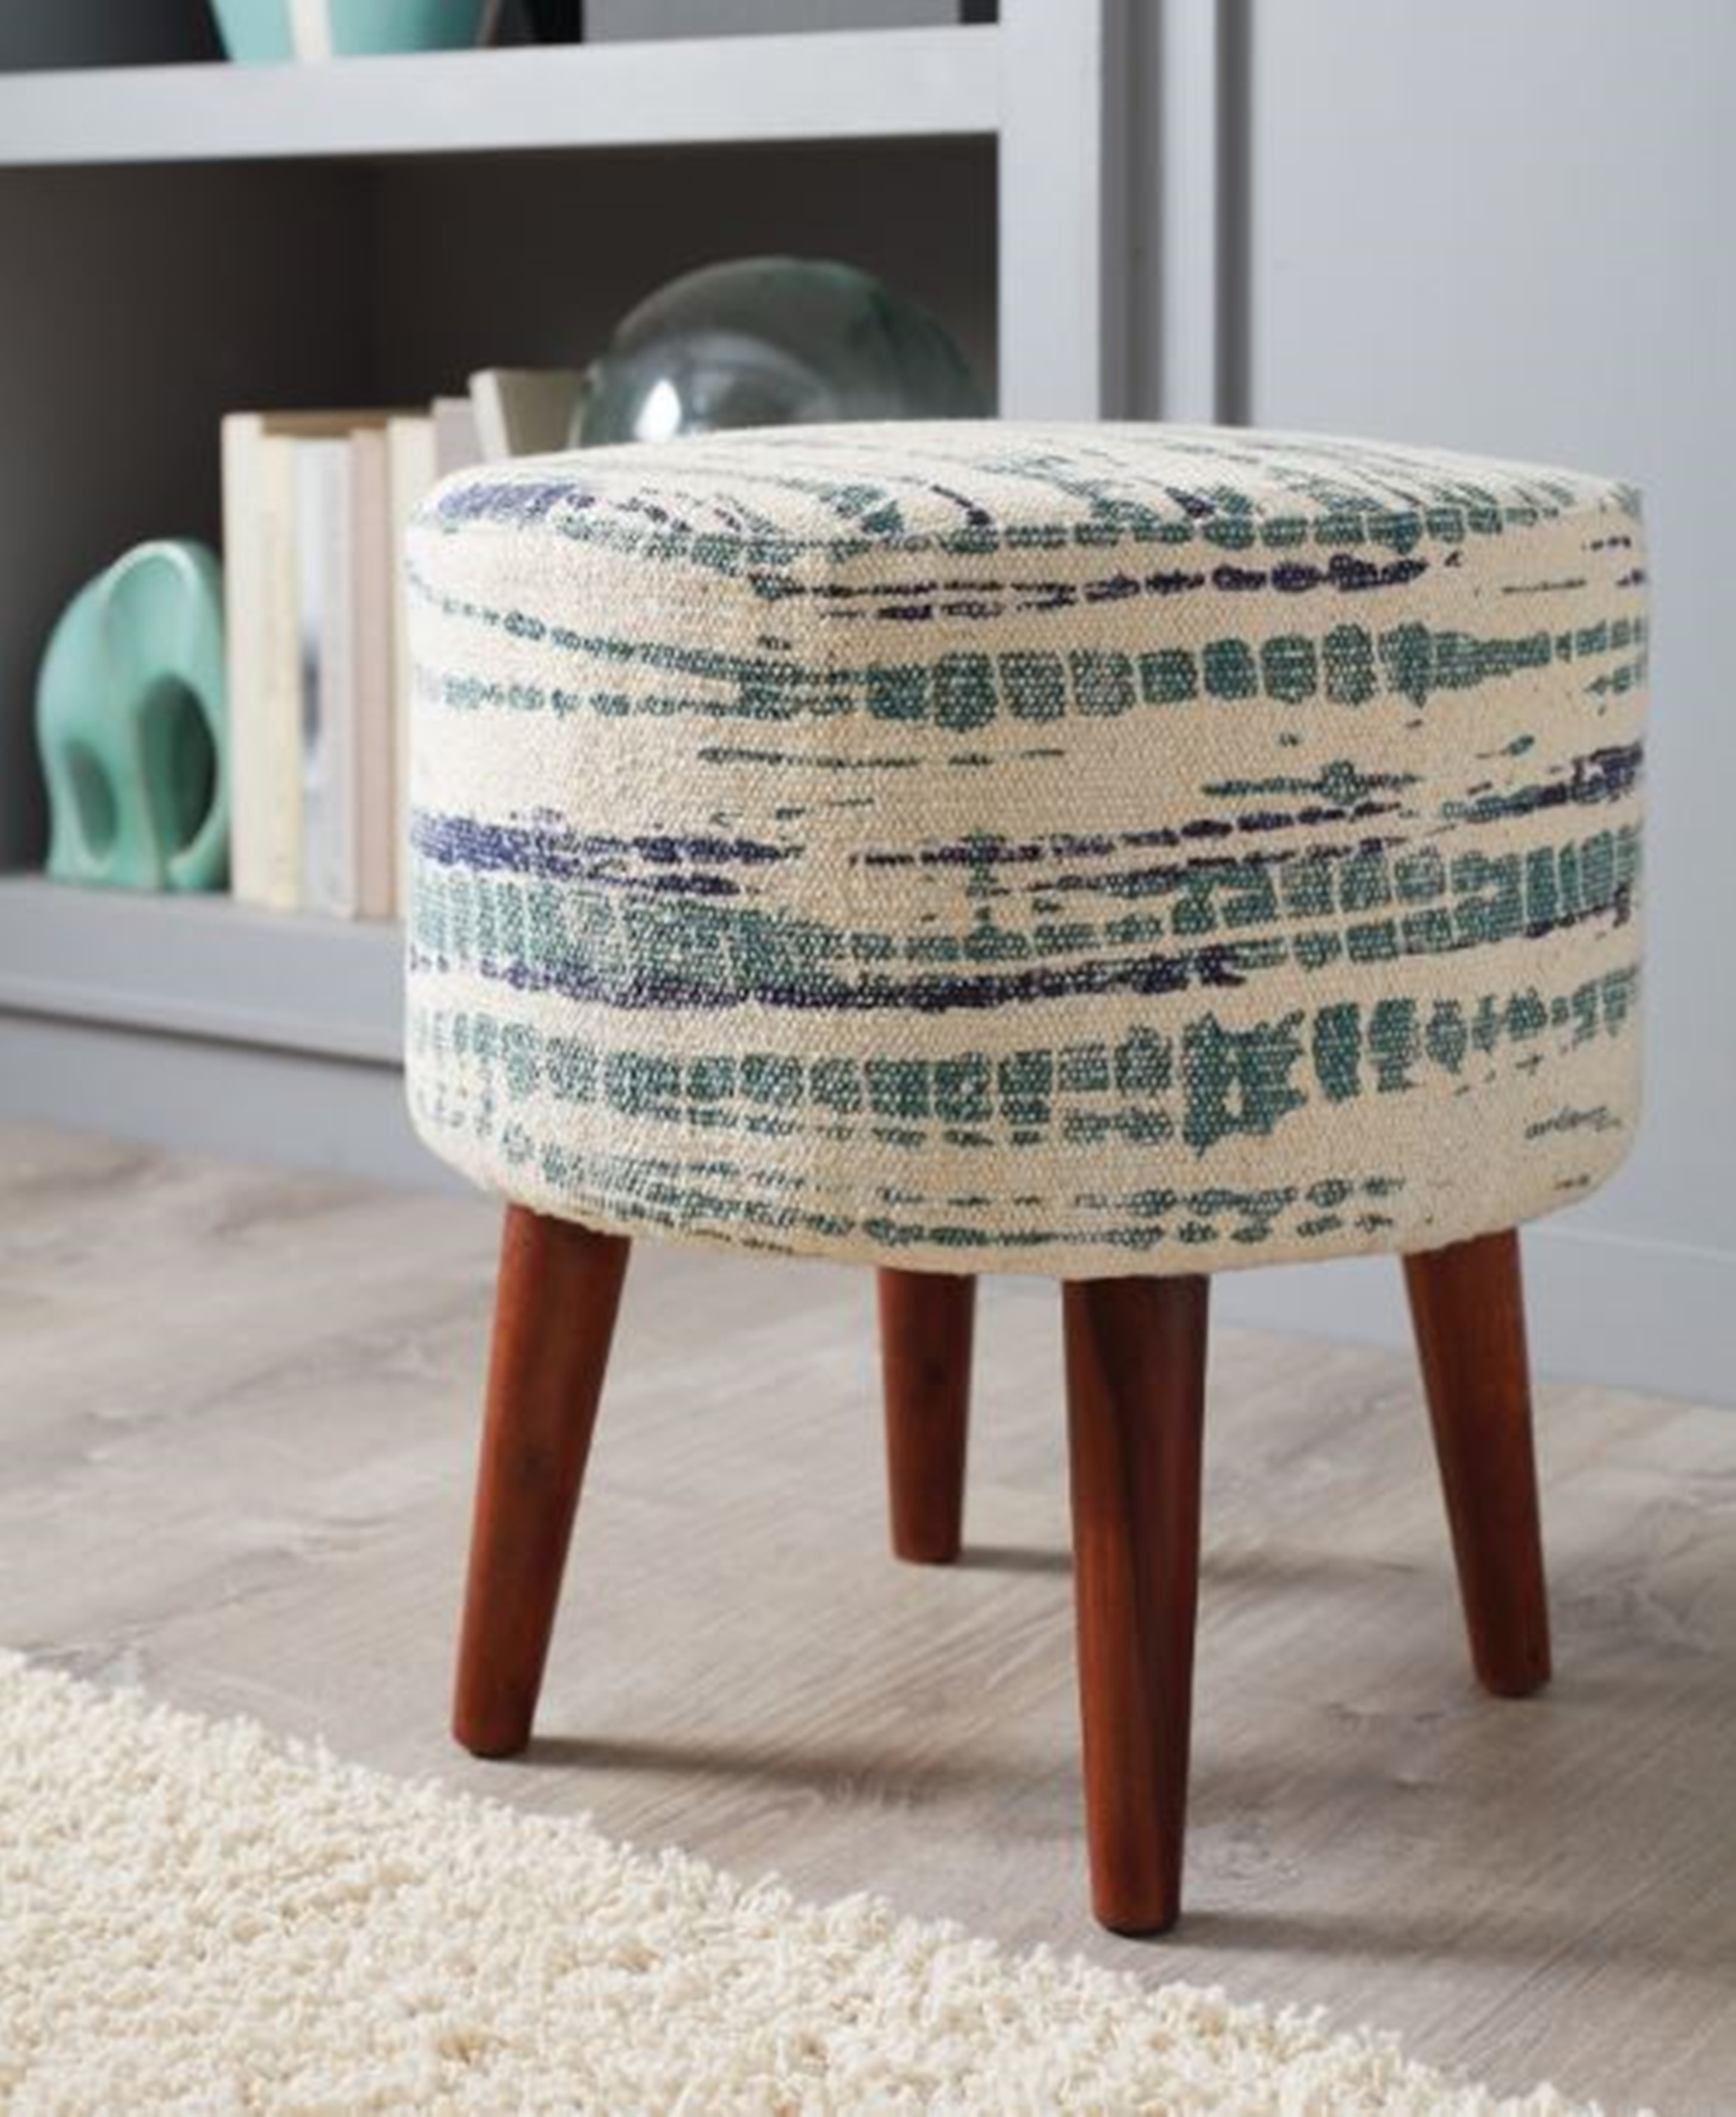 918493 - Accent Stool